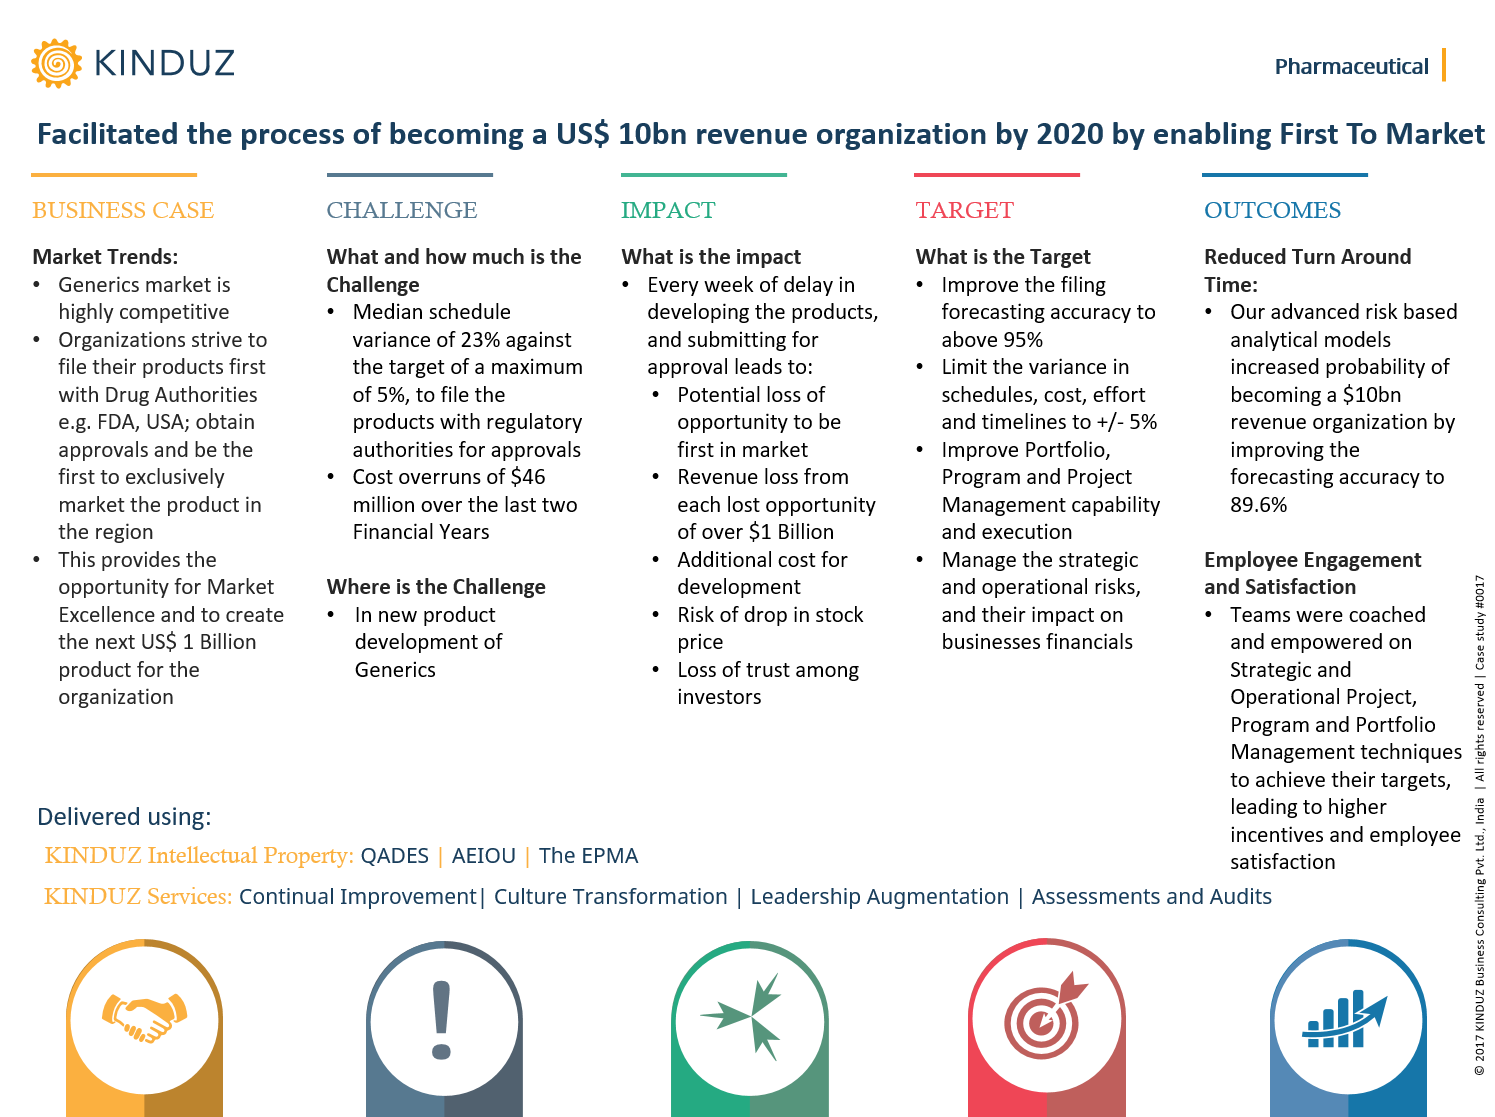 facilitated-the-process-of-becoming-a-us-10bn-revenue-organization-by-2020-by-enabling-first-to-market